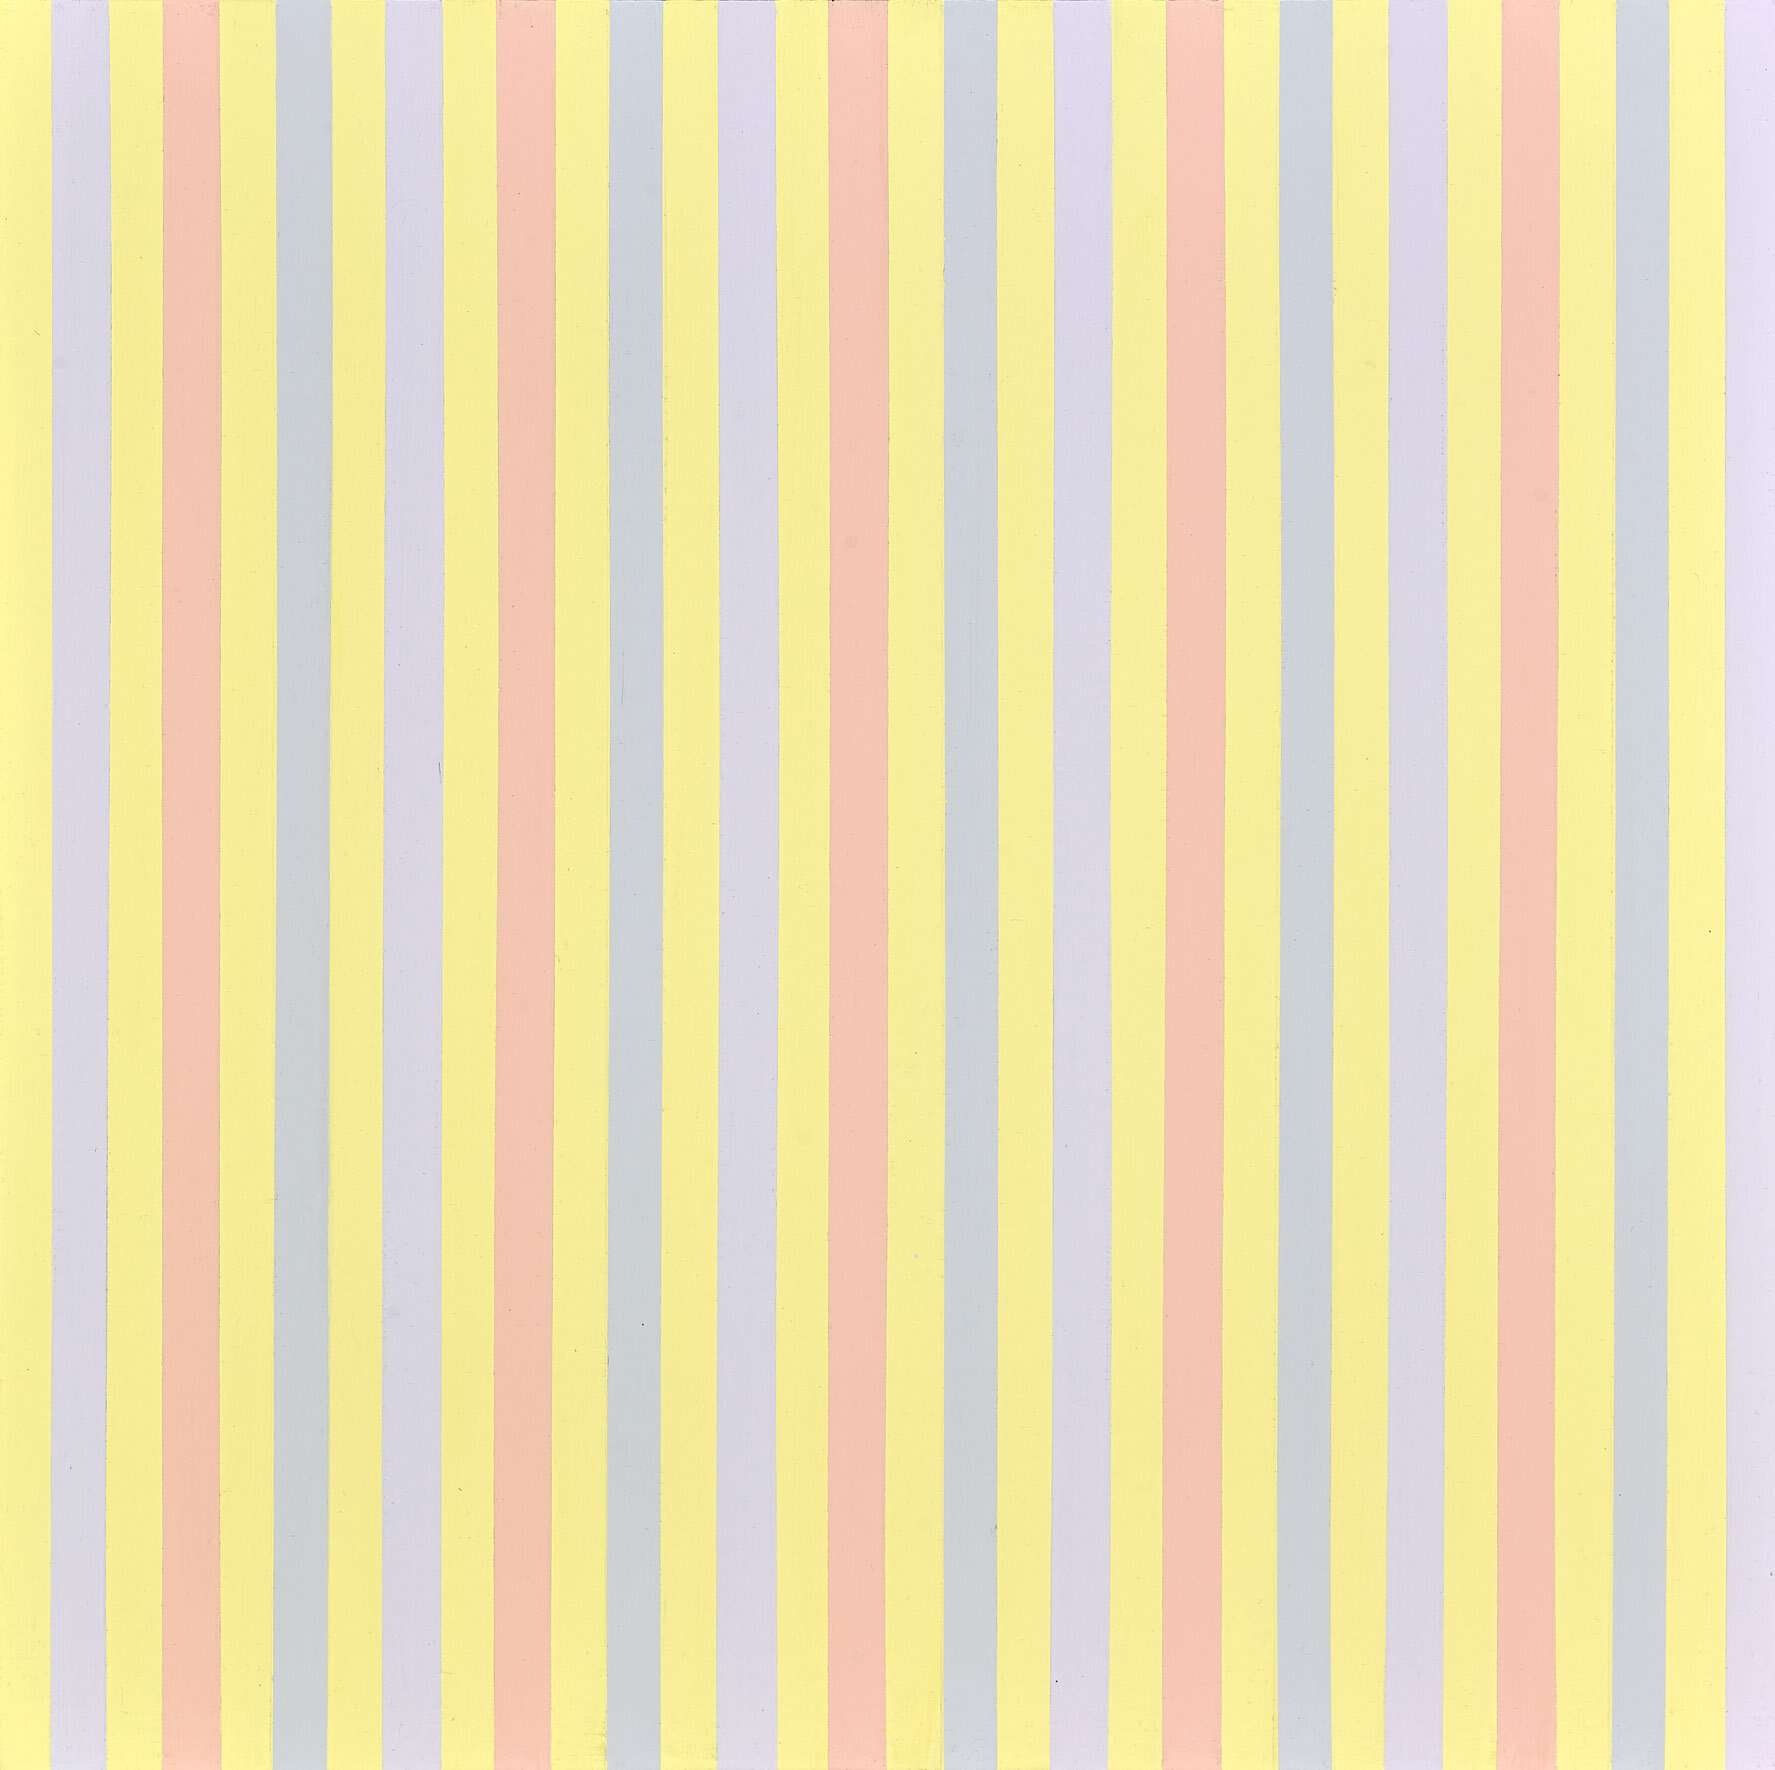 P26714-11 , 2011  oil and wax on linen 25 x 25 inches; 63.5 x 63.5 centimeters